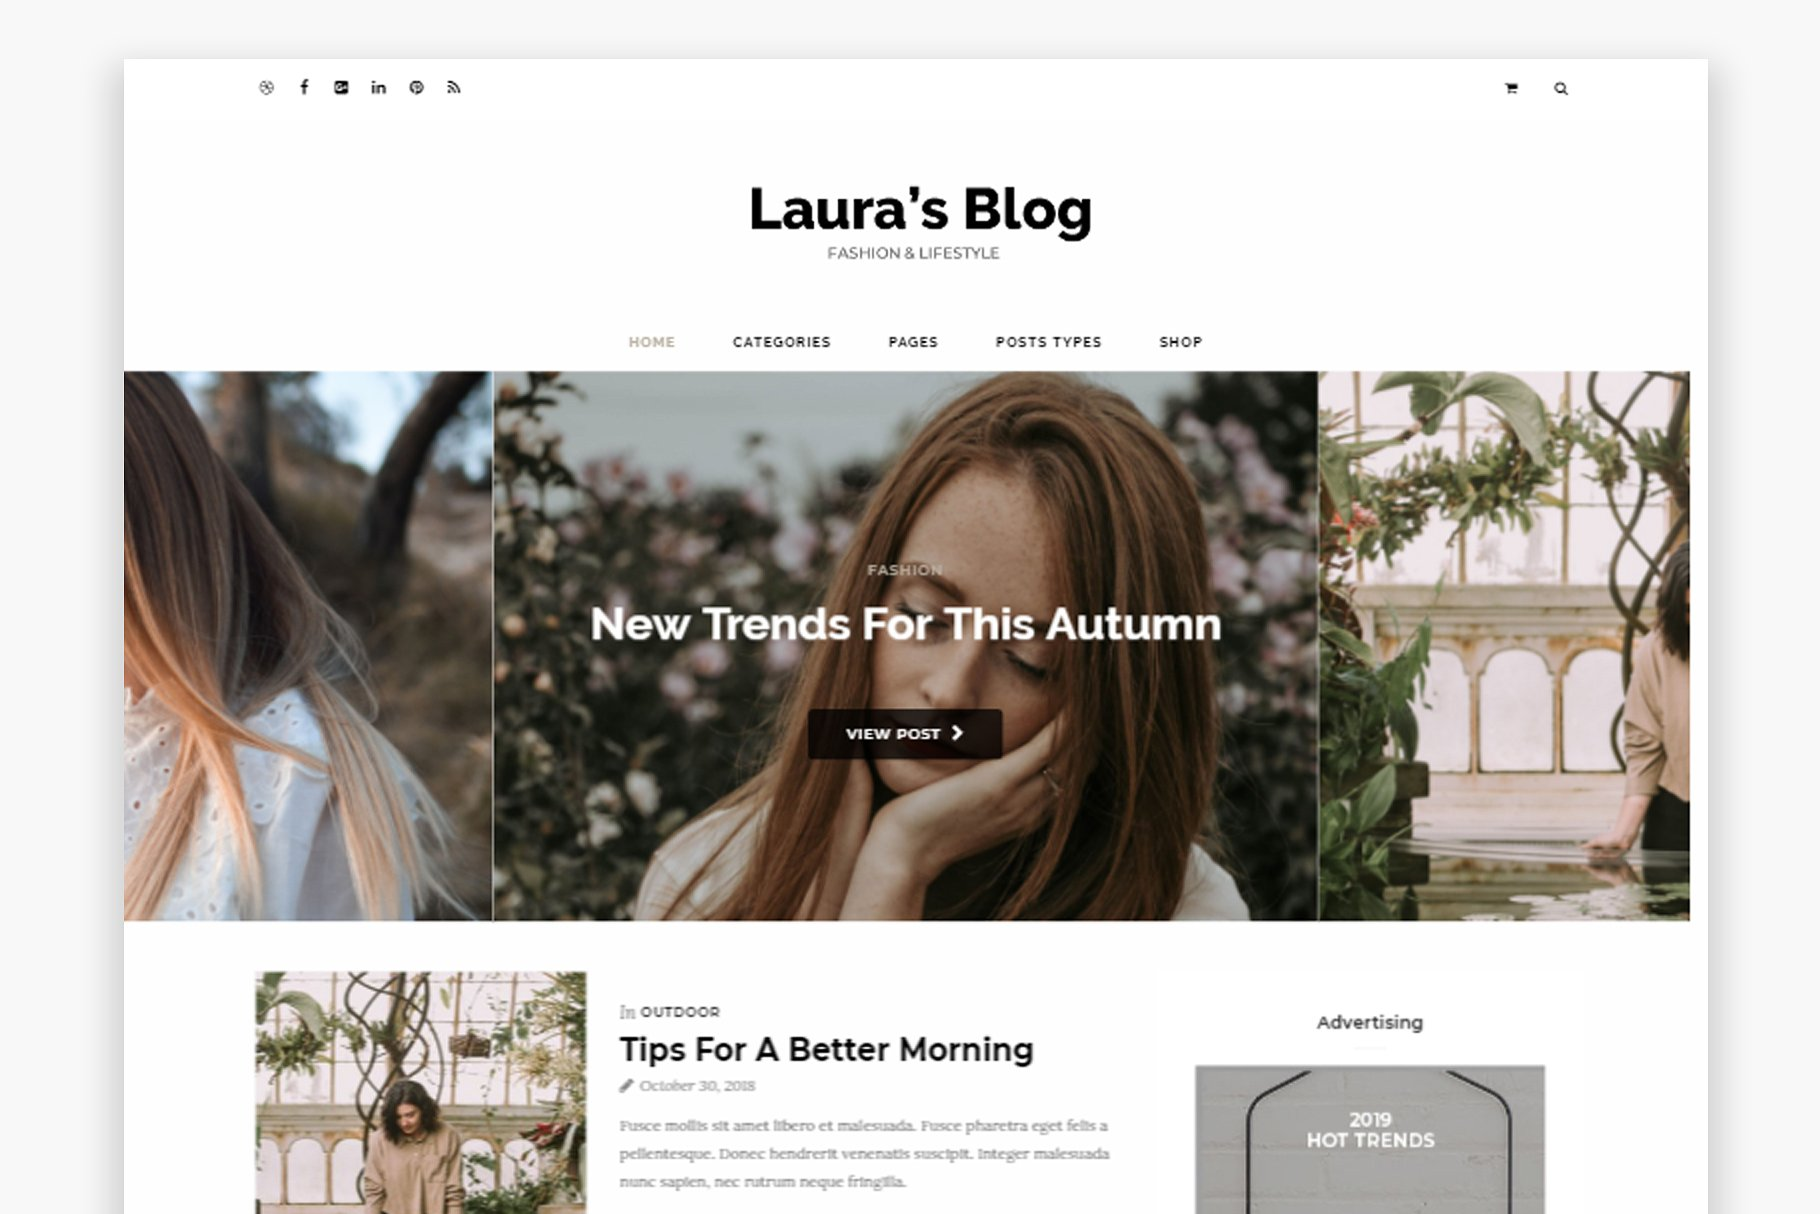 Laura Wordpress Blog Theme - Buy Now $9 - WordPress Blog Theme, WordPress Blog Themes, Blogger Templates, Lifestyle WordPress Blog Theme, Minimalist WordPress Blog Theme, Feminine WordPress Blog Theme, Simple WordPress Blog Theme, Business WordPress Theme, Responsive WordPress Theme, Modern WordPress Theme, Elegant WordPress Theme, Magazine WordPress Theme https://avemateiu.com/themes/